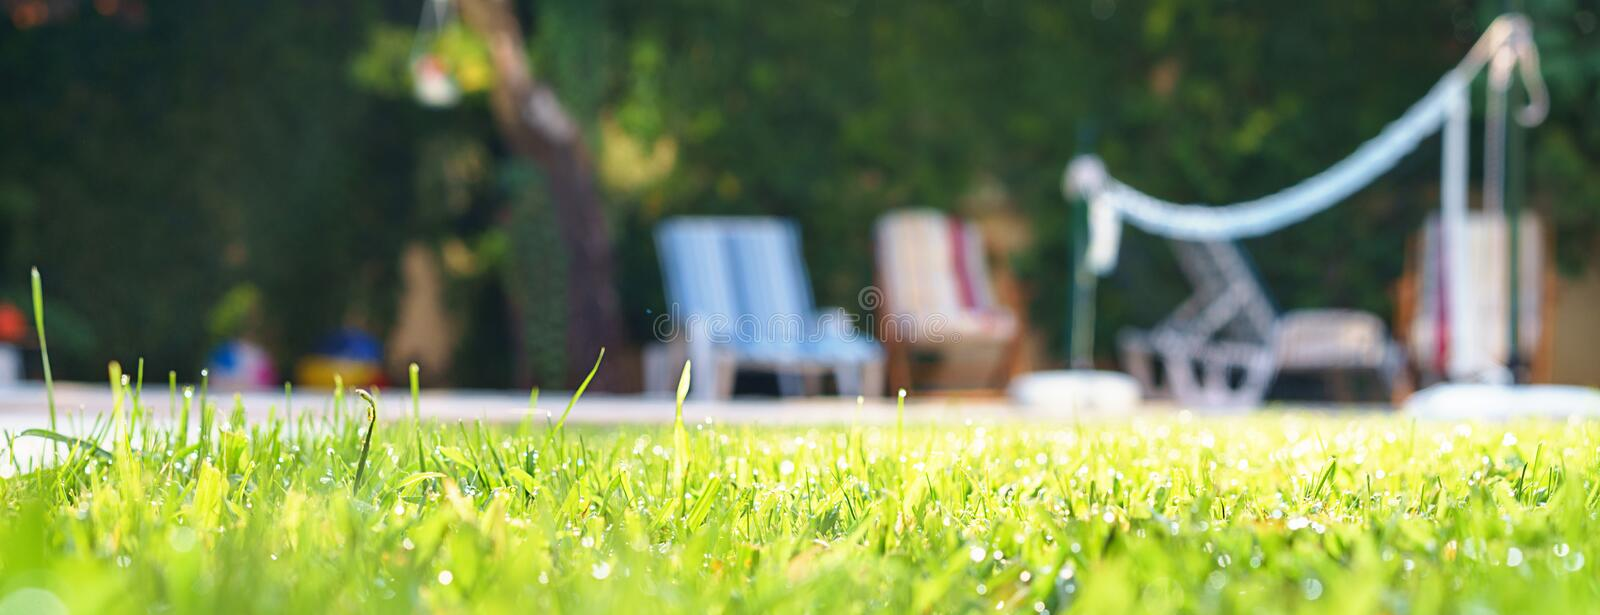 Green grass with water drops and green bokeh background on the yard with swimming pool and deck chairs for friends at garden party stock photography